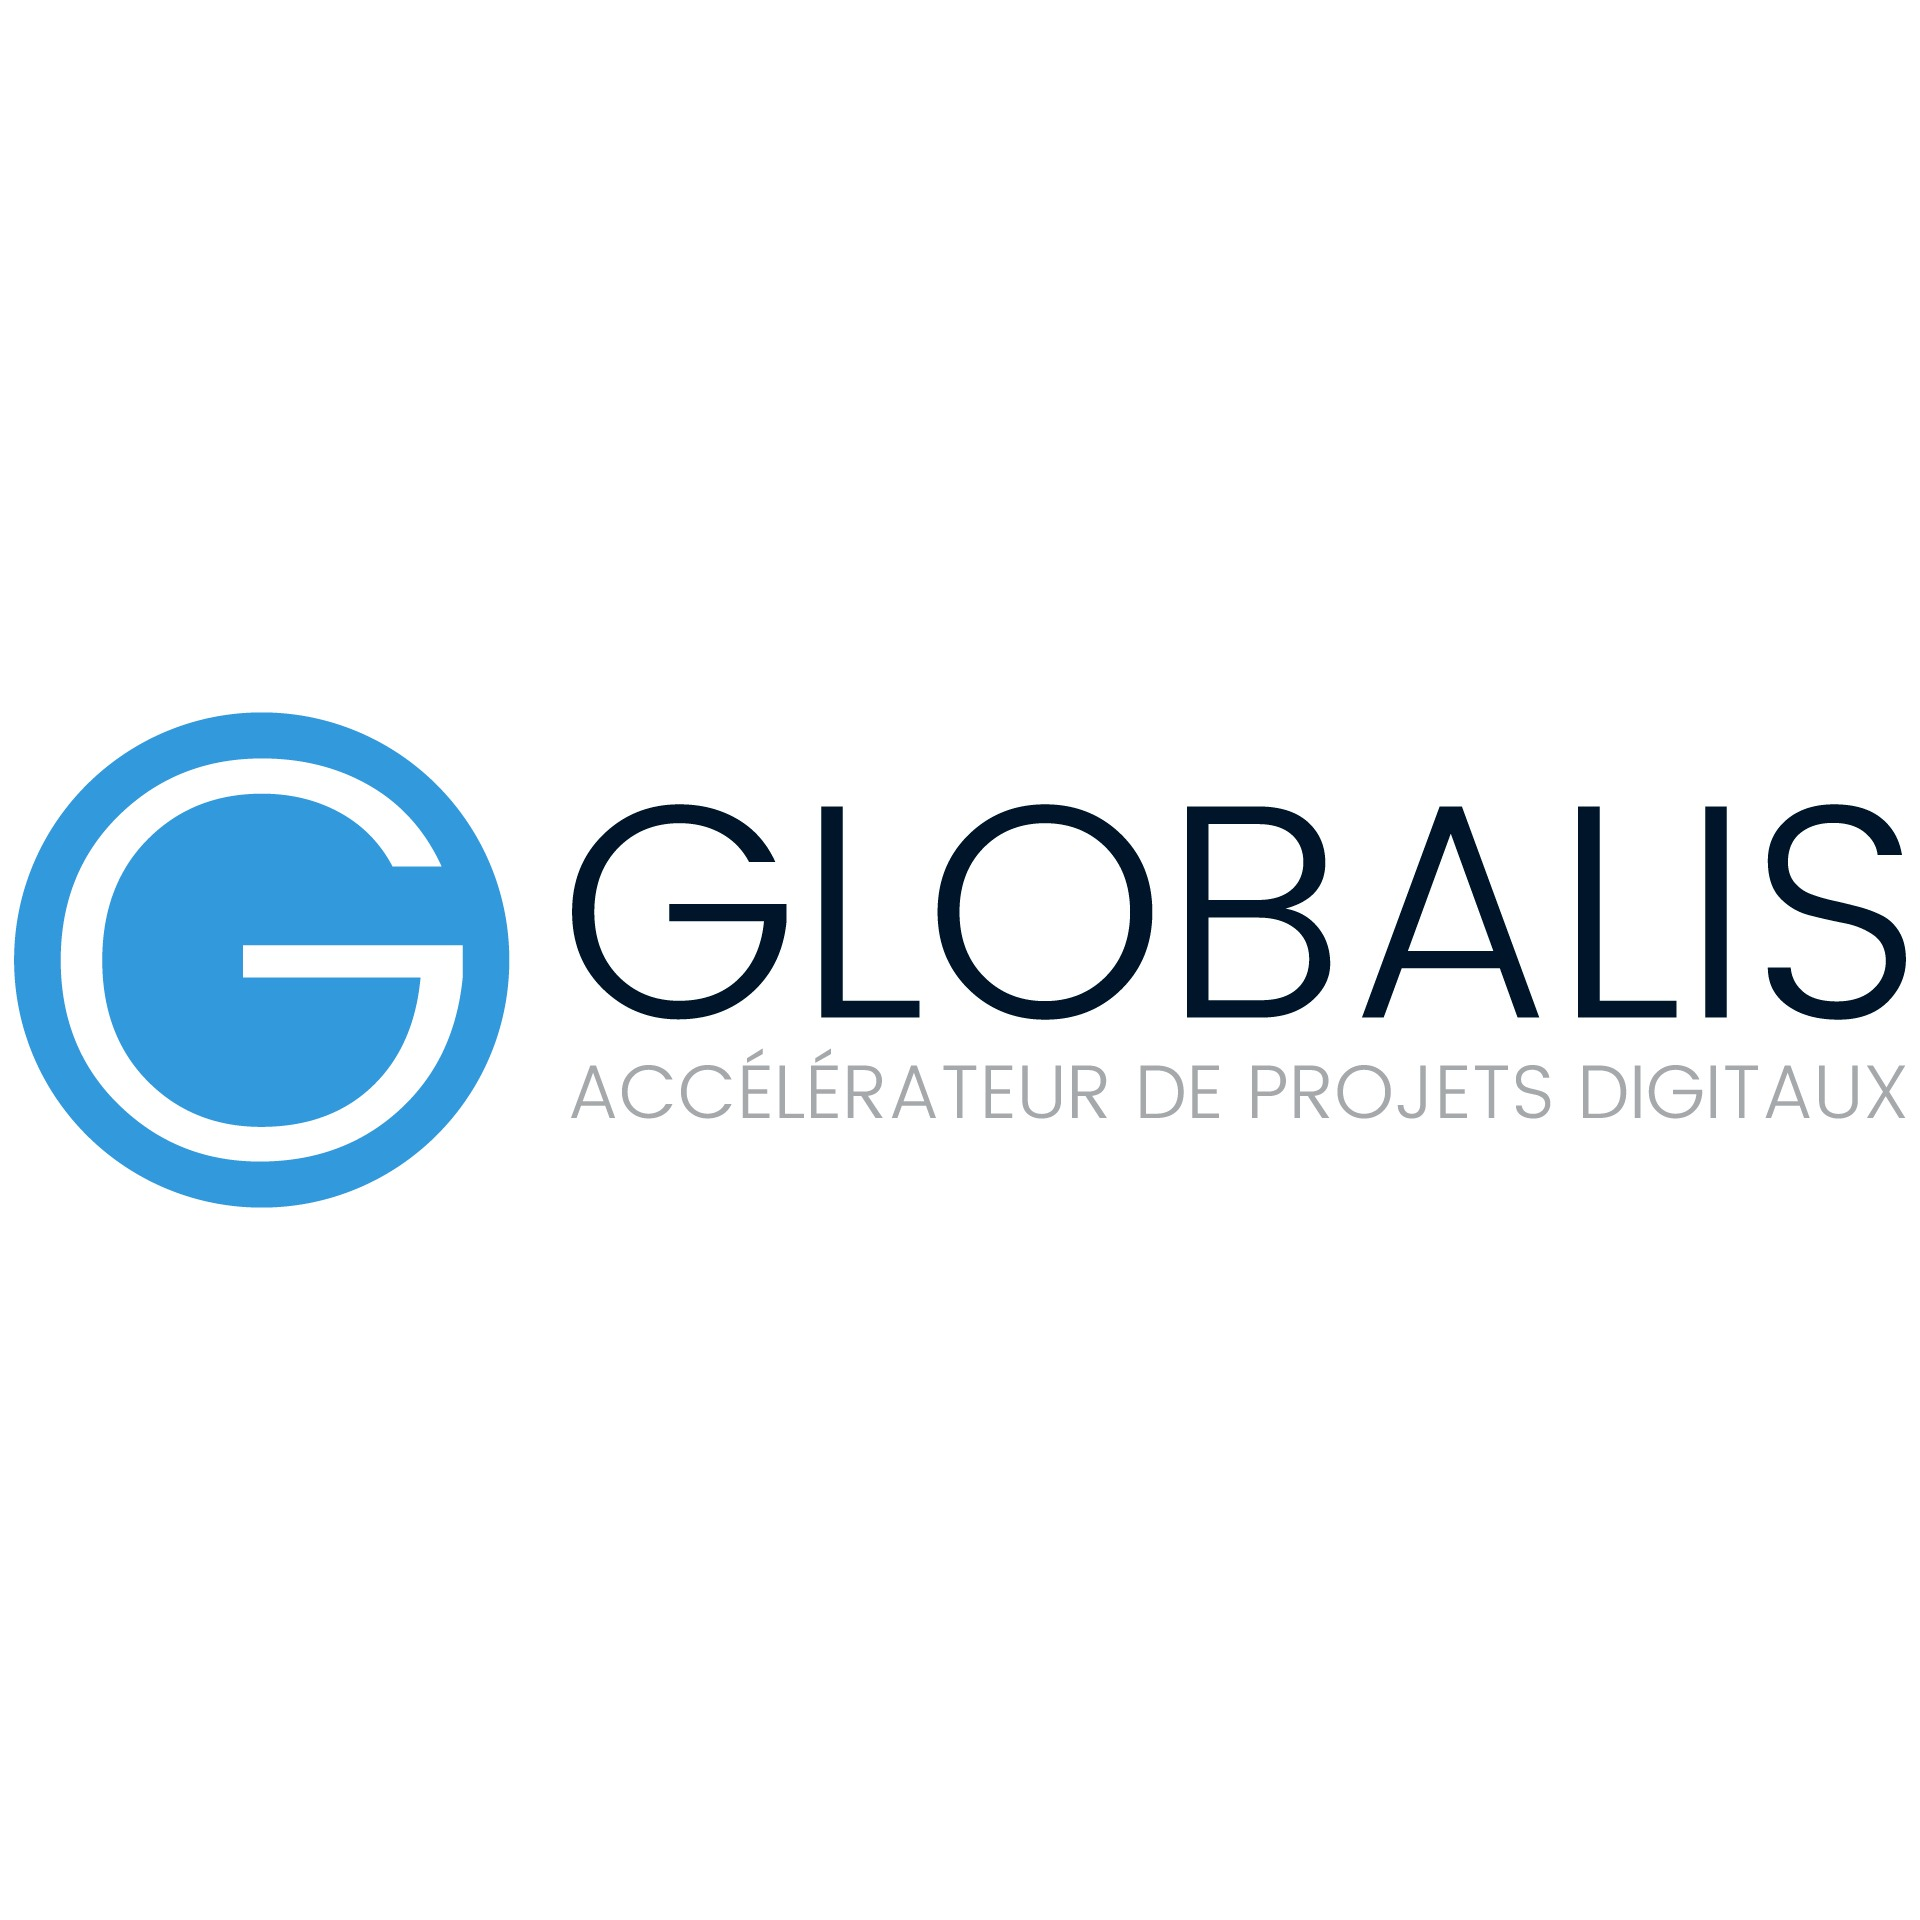 the Globalis logo.